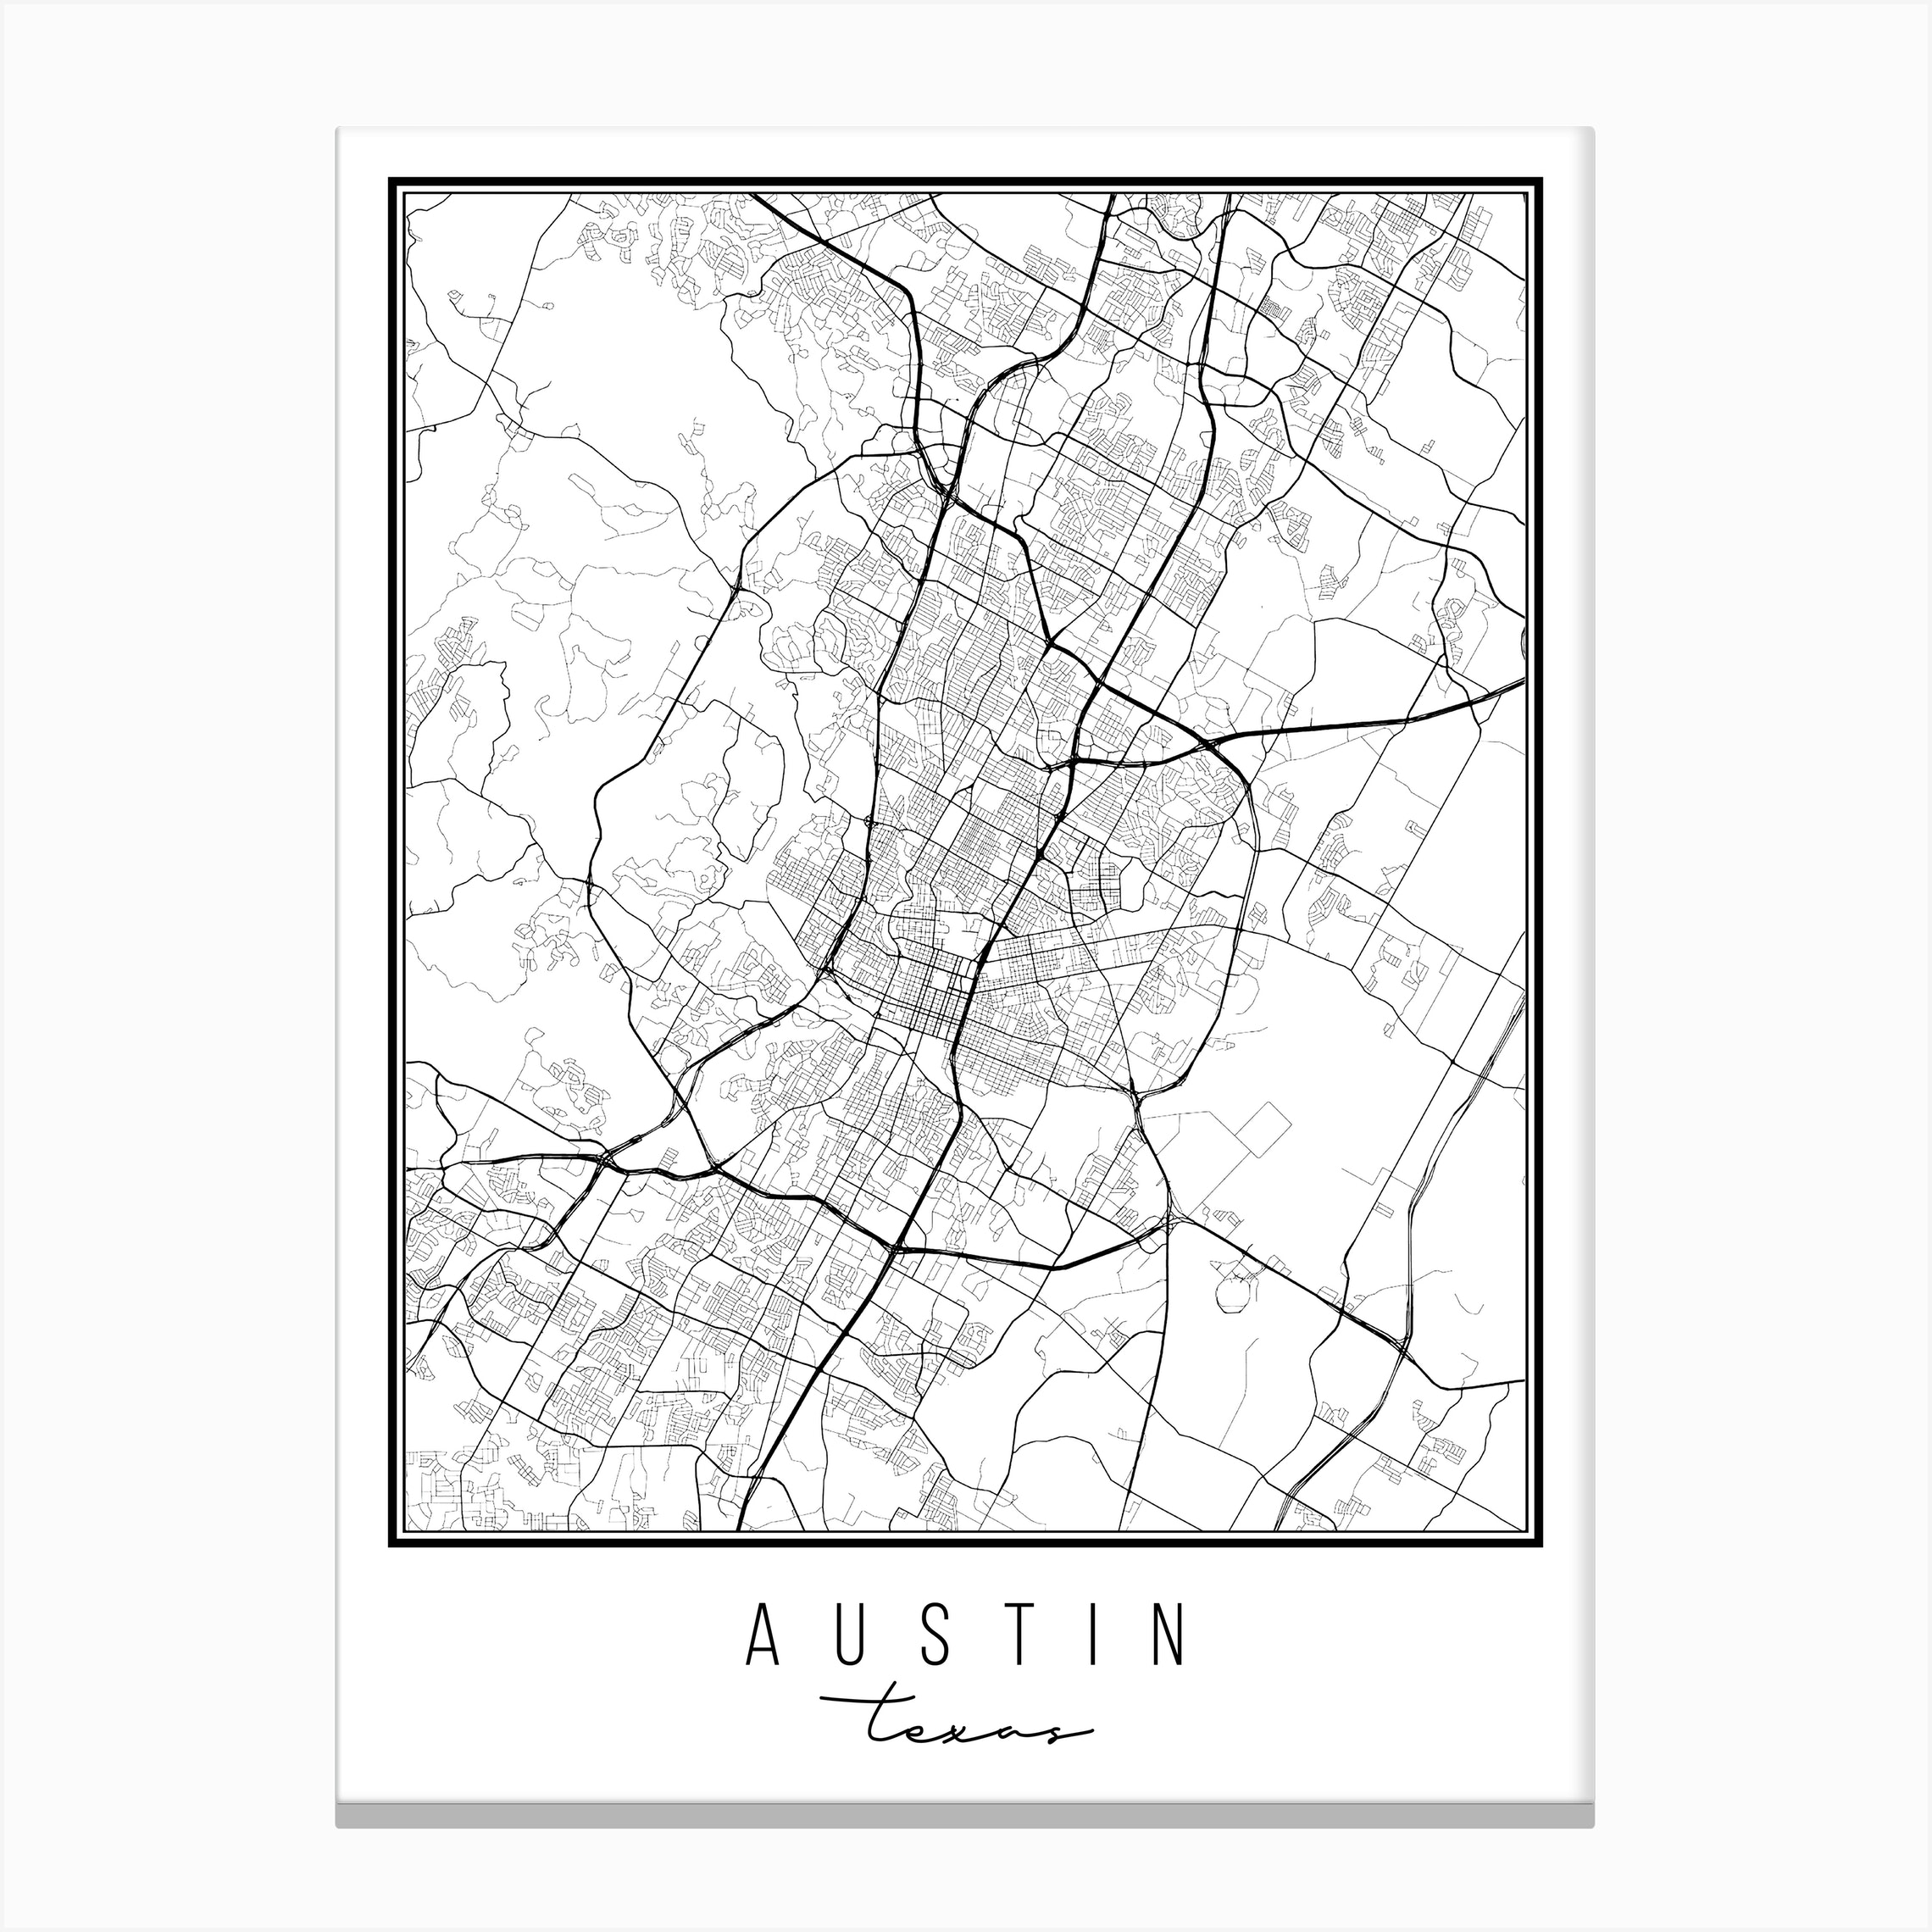 Texas Street Map Austin Texas Street Map Canvas Print by Typologie Paper Co   Fy